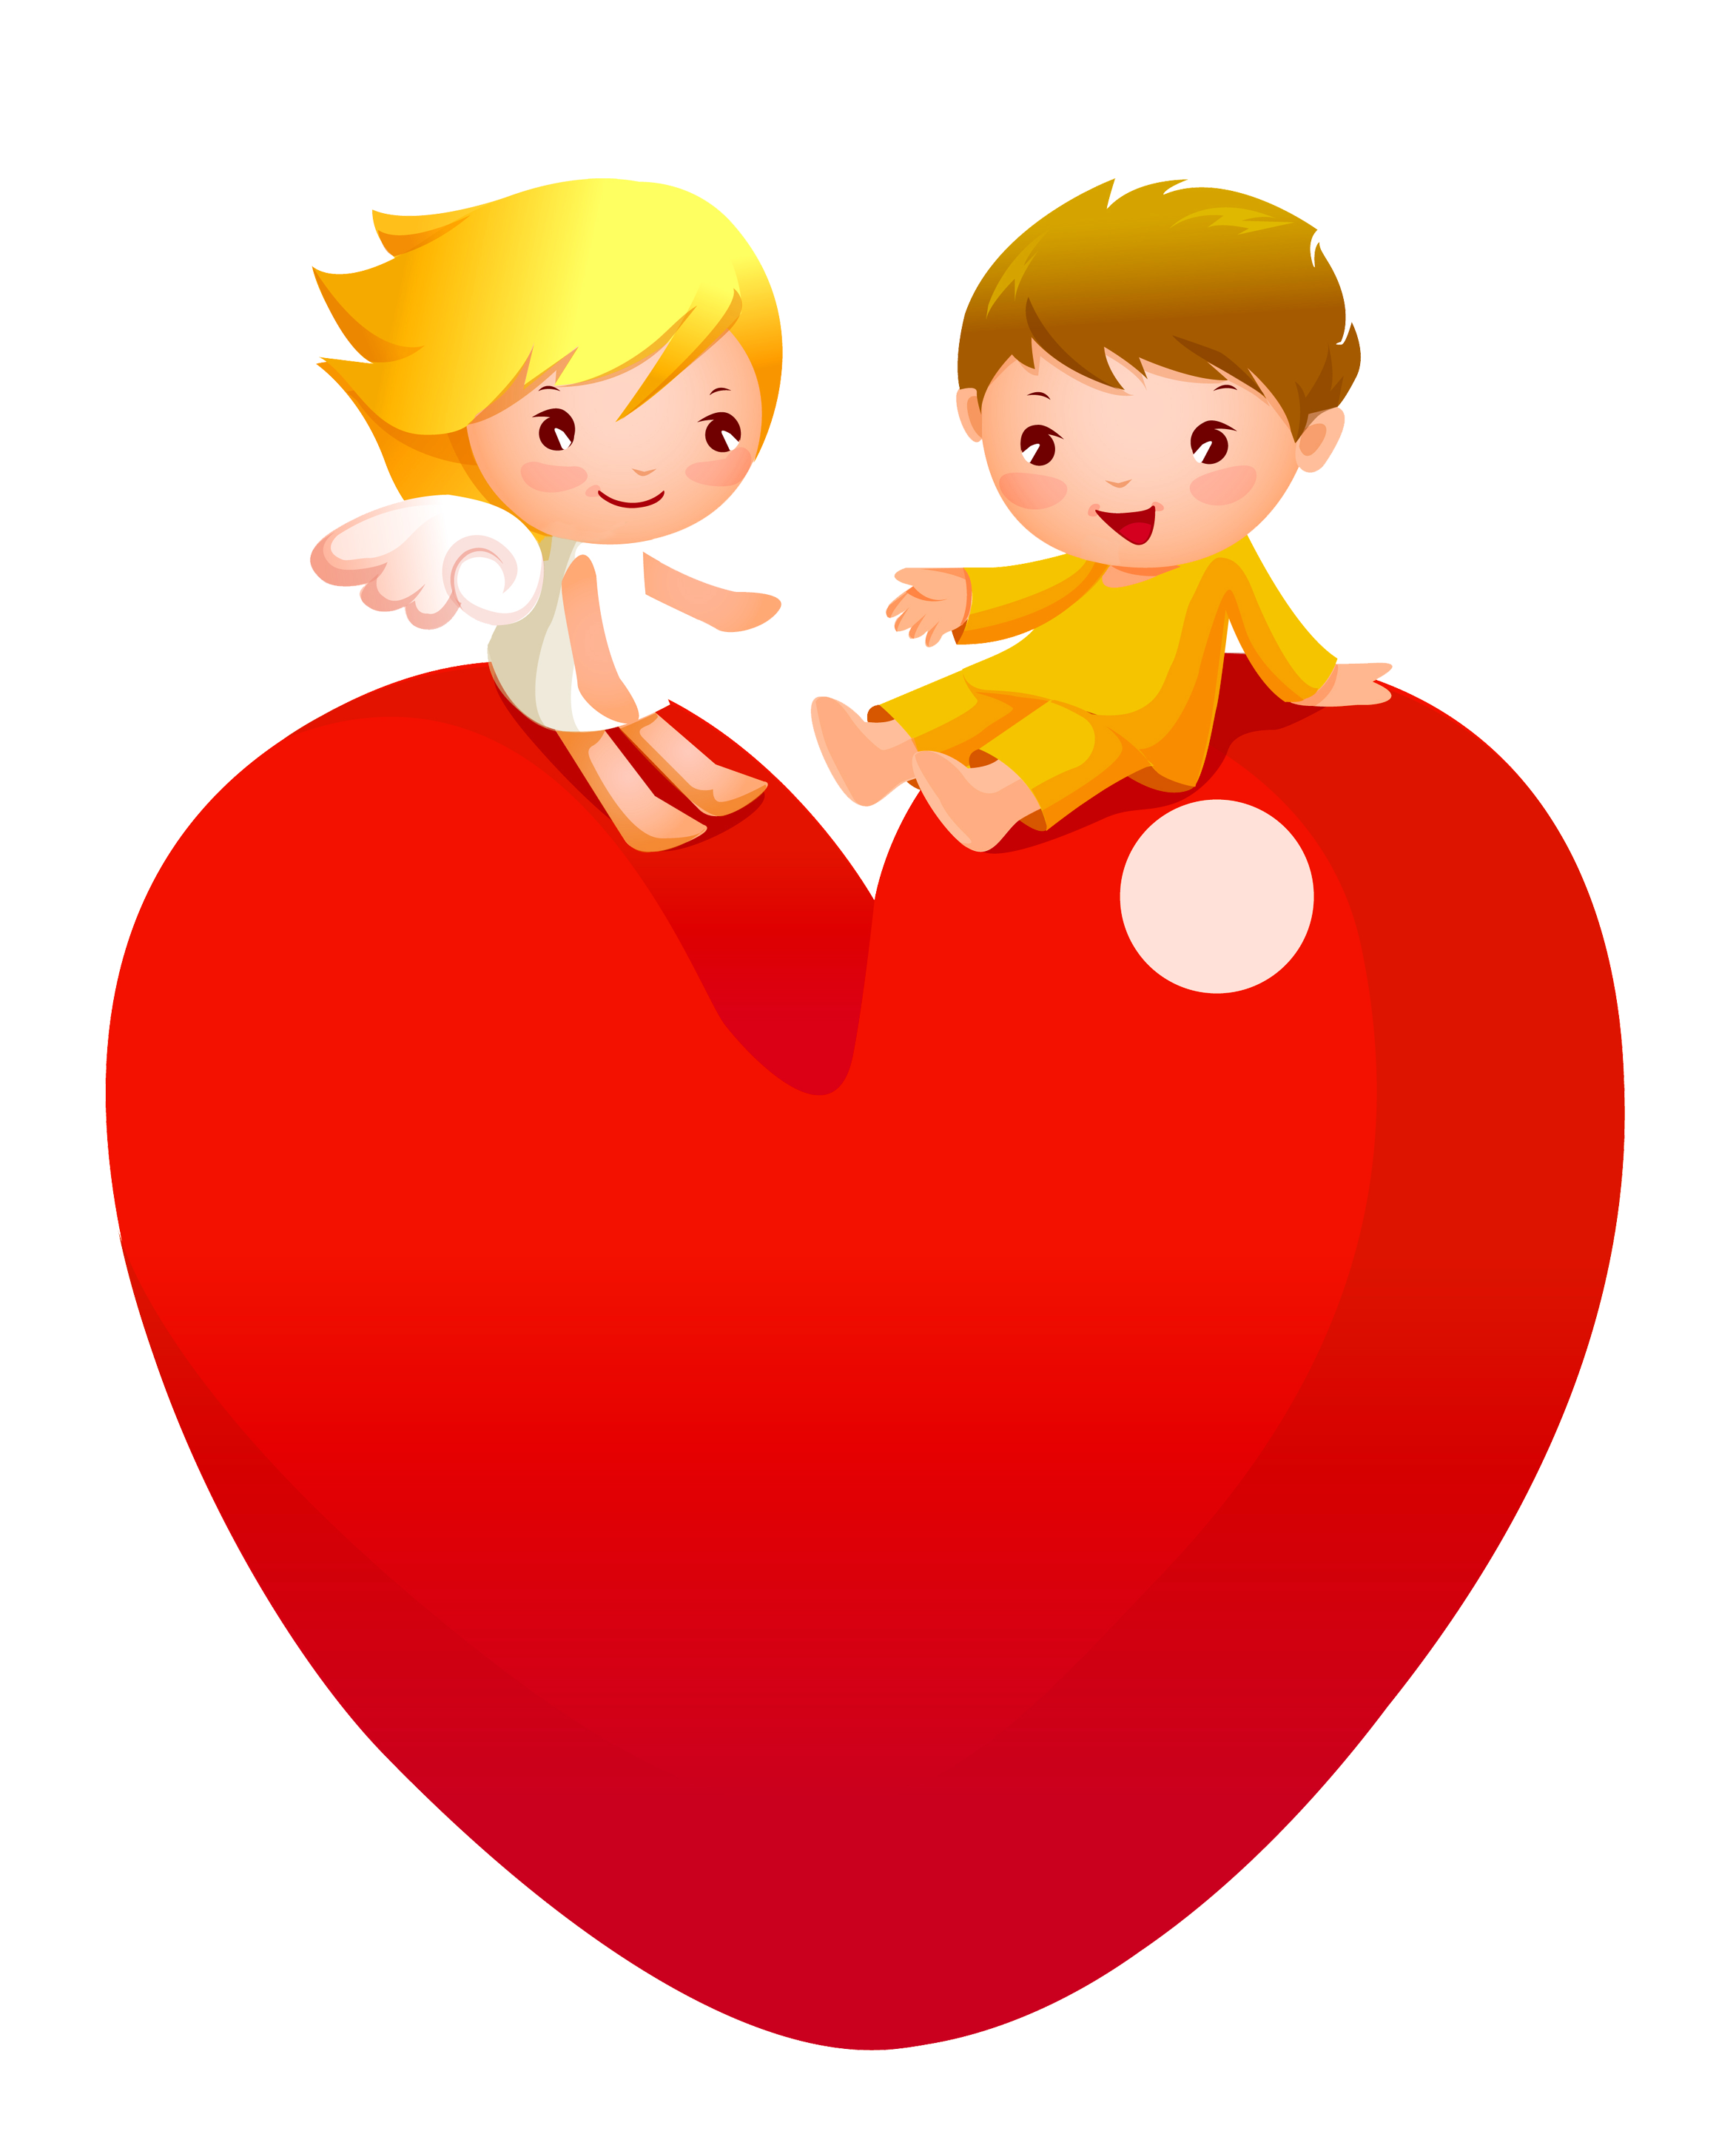 Heart person clipart png free download Red Heart with Angels PNG Clipart | Gallery Yopriceville - High ... png free download